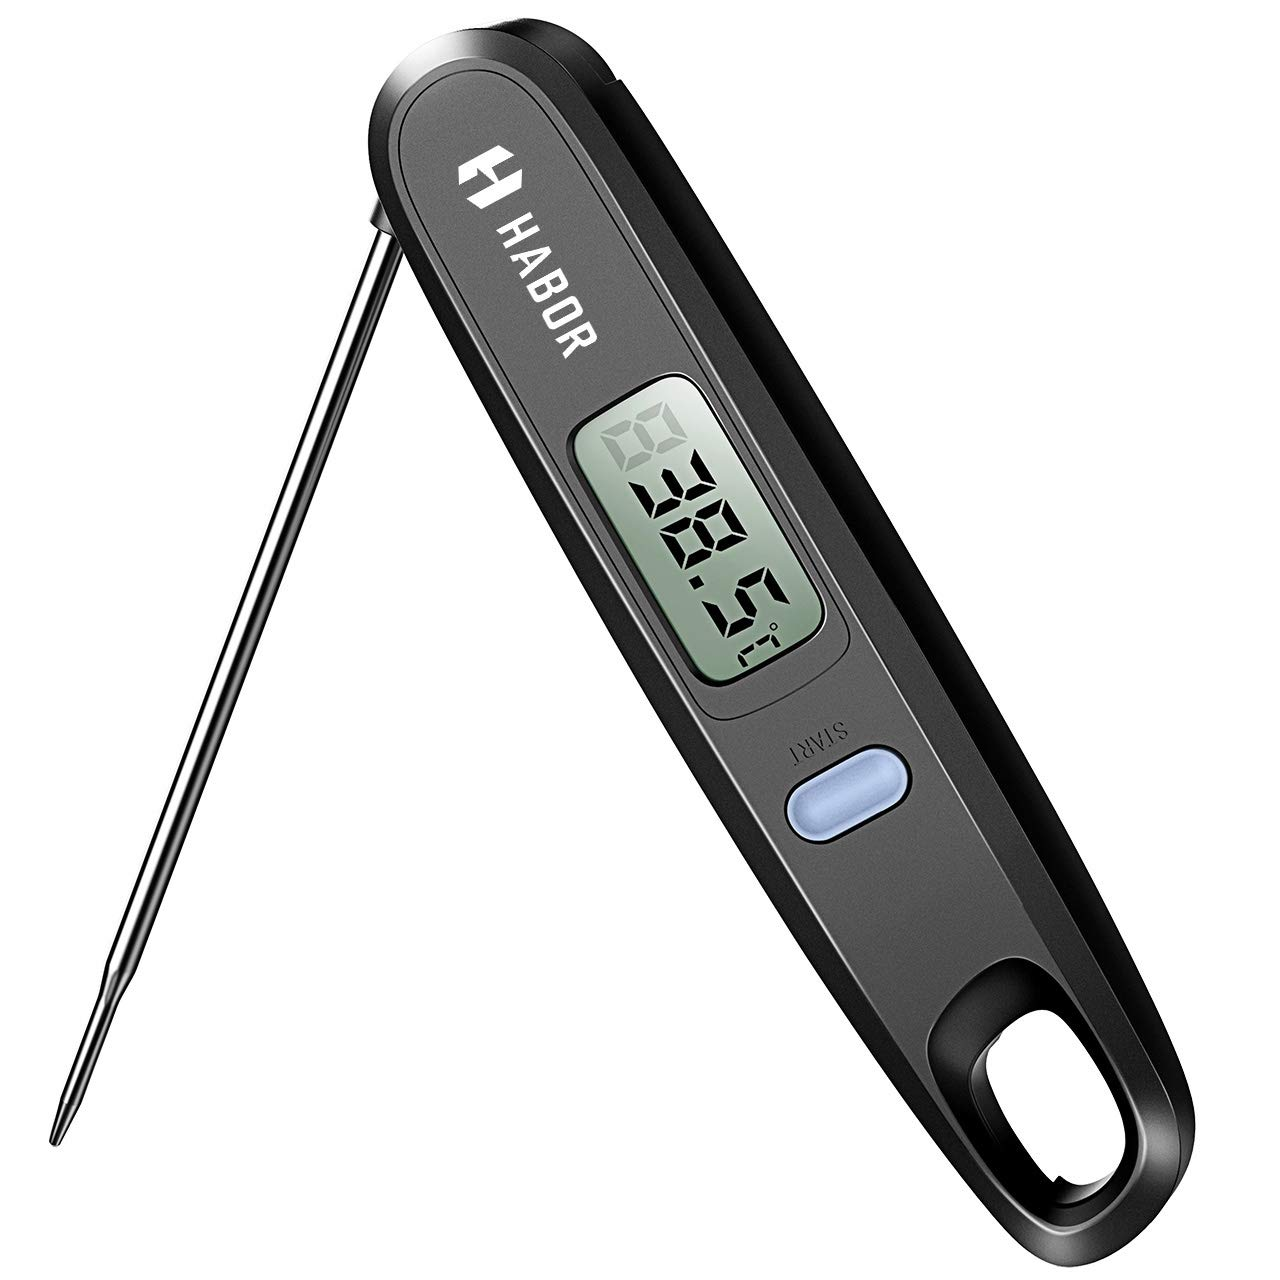 Habor, Digital Cooking Kitchen Thermometer Instant Read Sensor with Foldable Probe for Food Baking Liquid Meat BBQ Grill Smokers, Classic Black